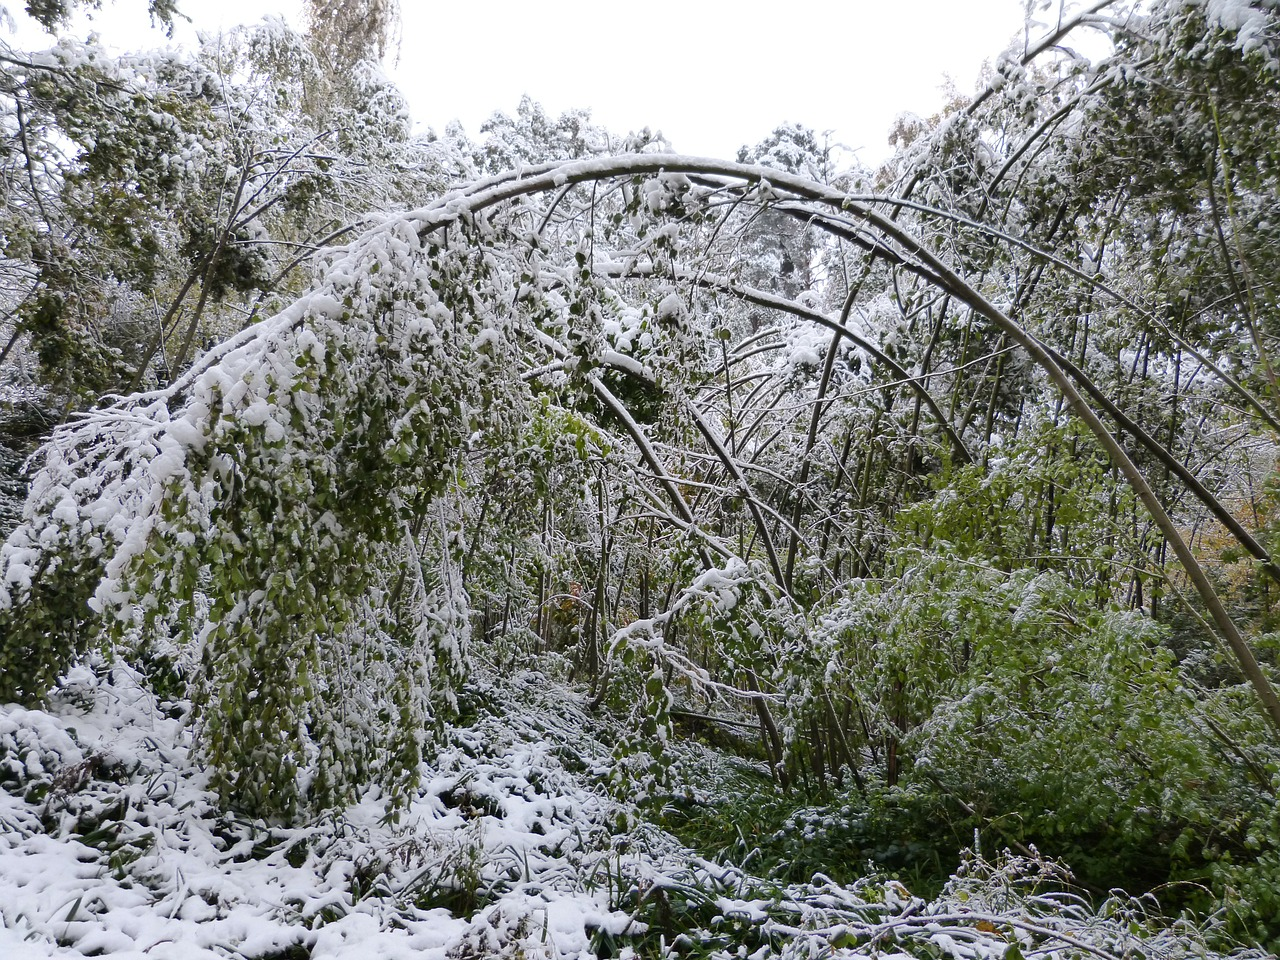 Assessing Winter Damage To Trees, Shrubs And Grasses